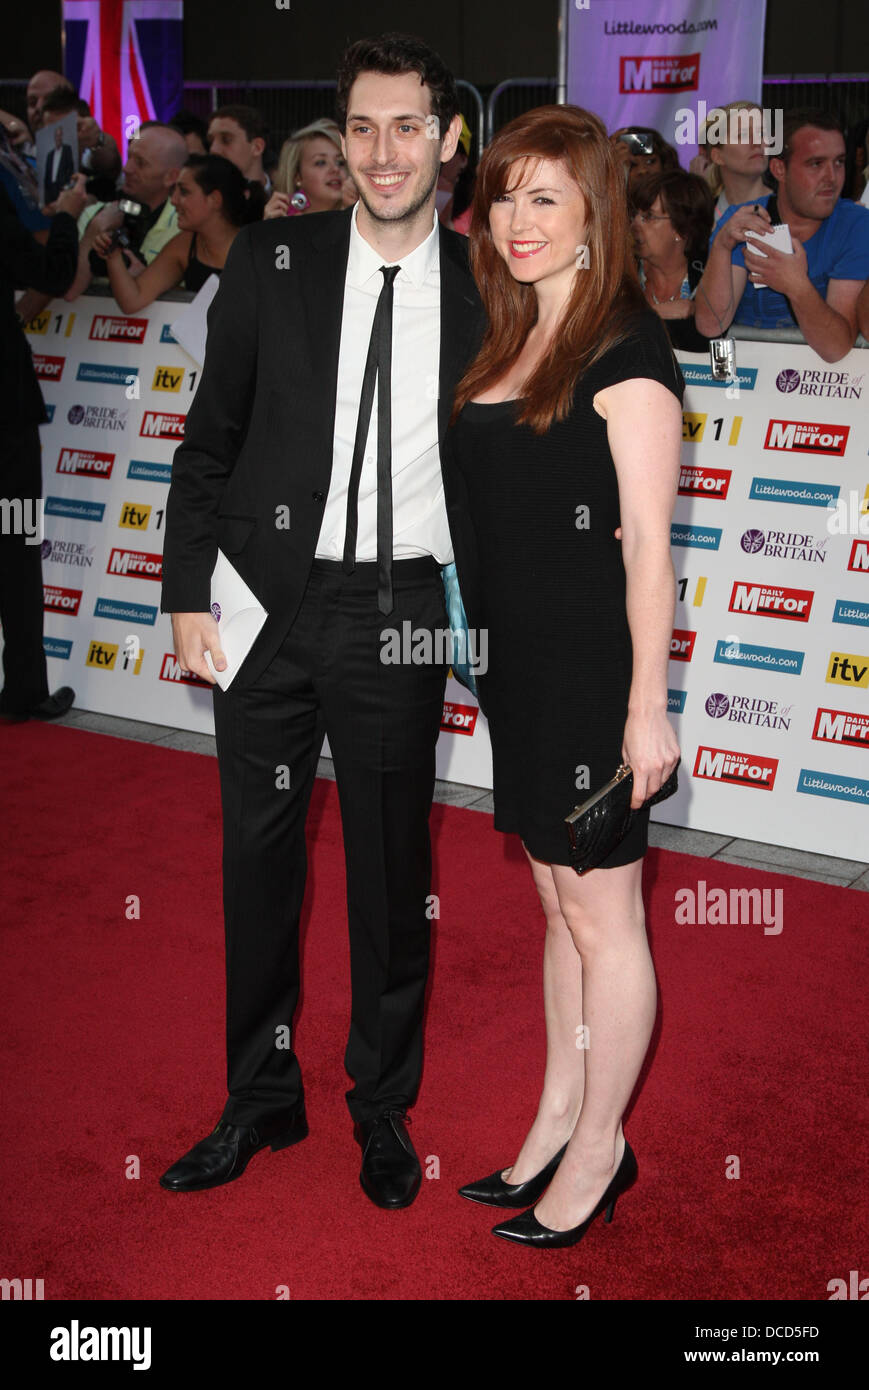 blake harrison and kerry ann lynch the pride of britain awards 2011